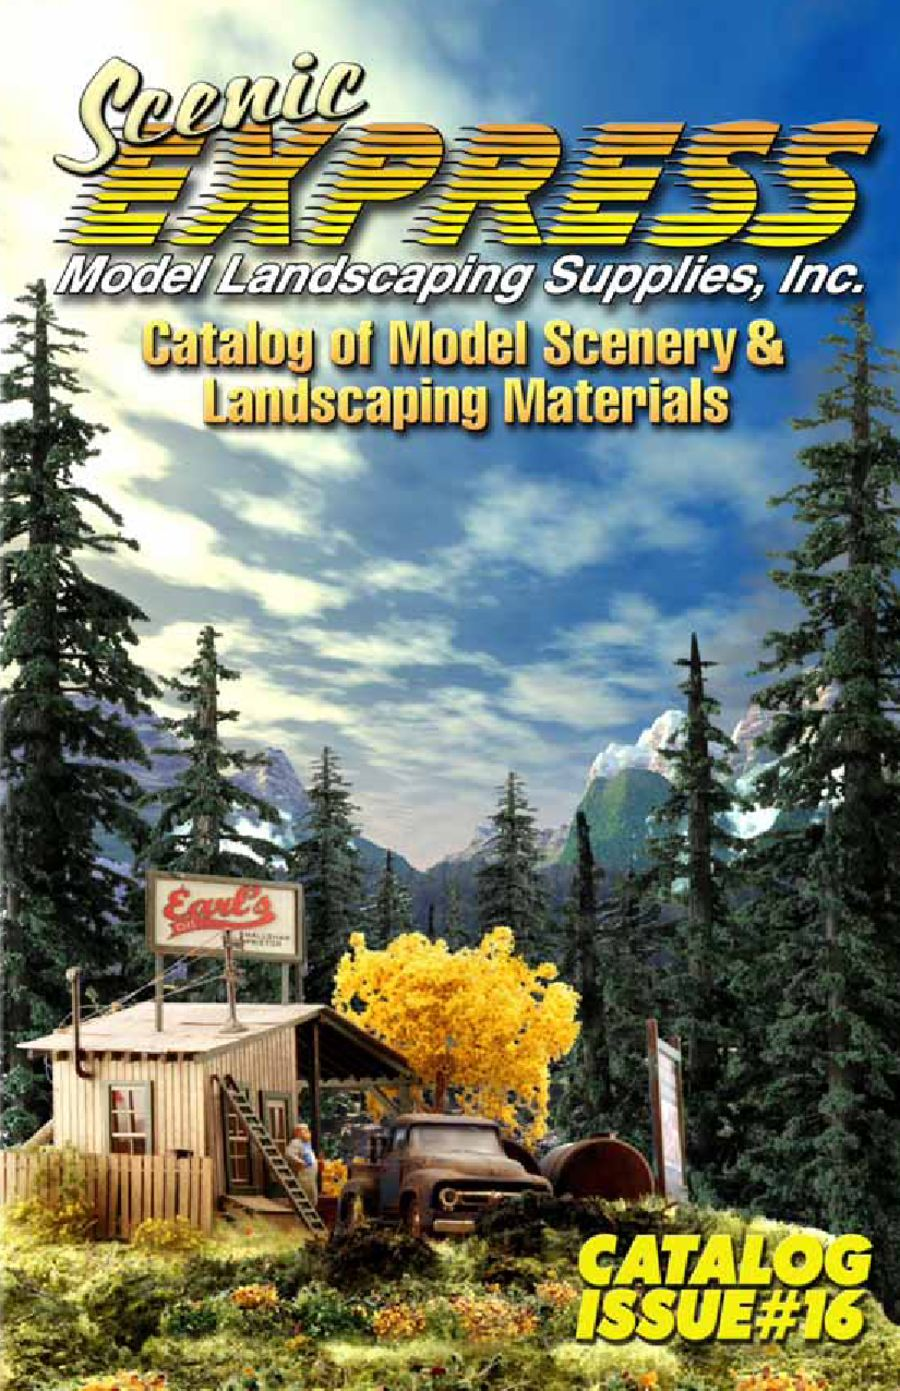 Model Landscaping Supplies by Scenic Express